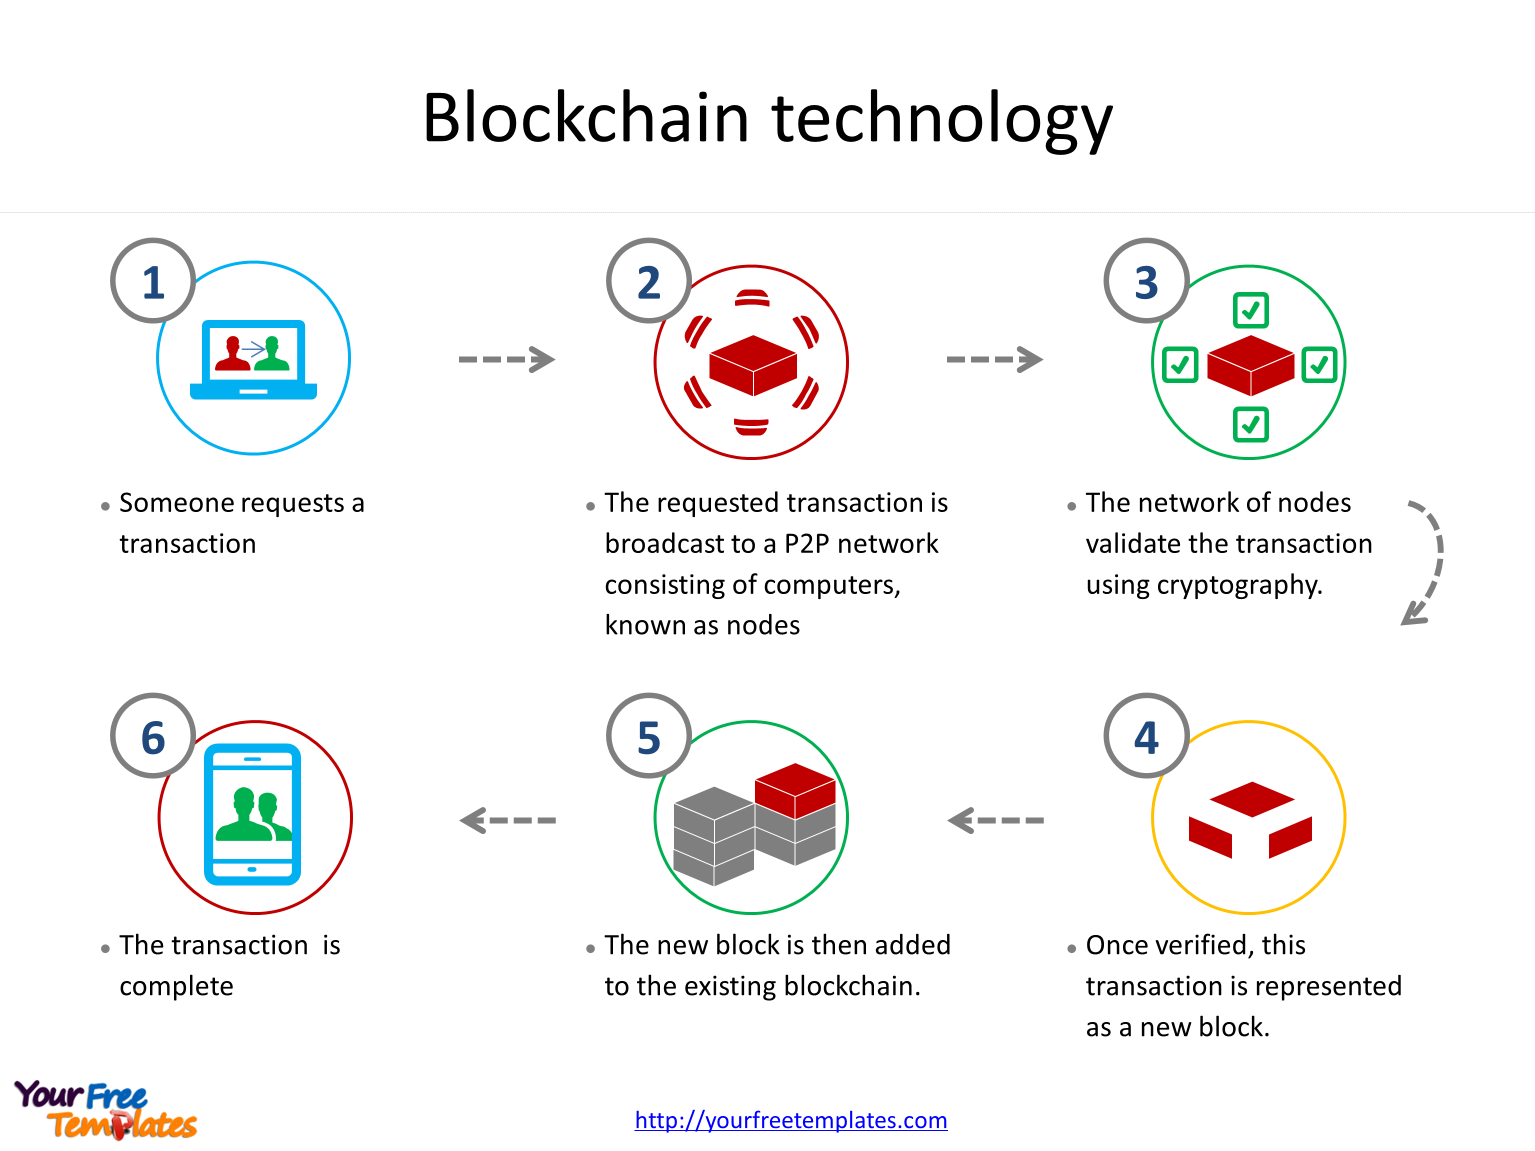 Blockchain technology process